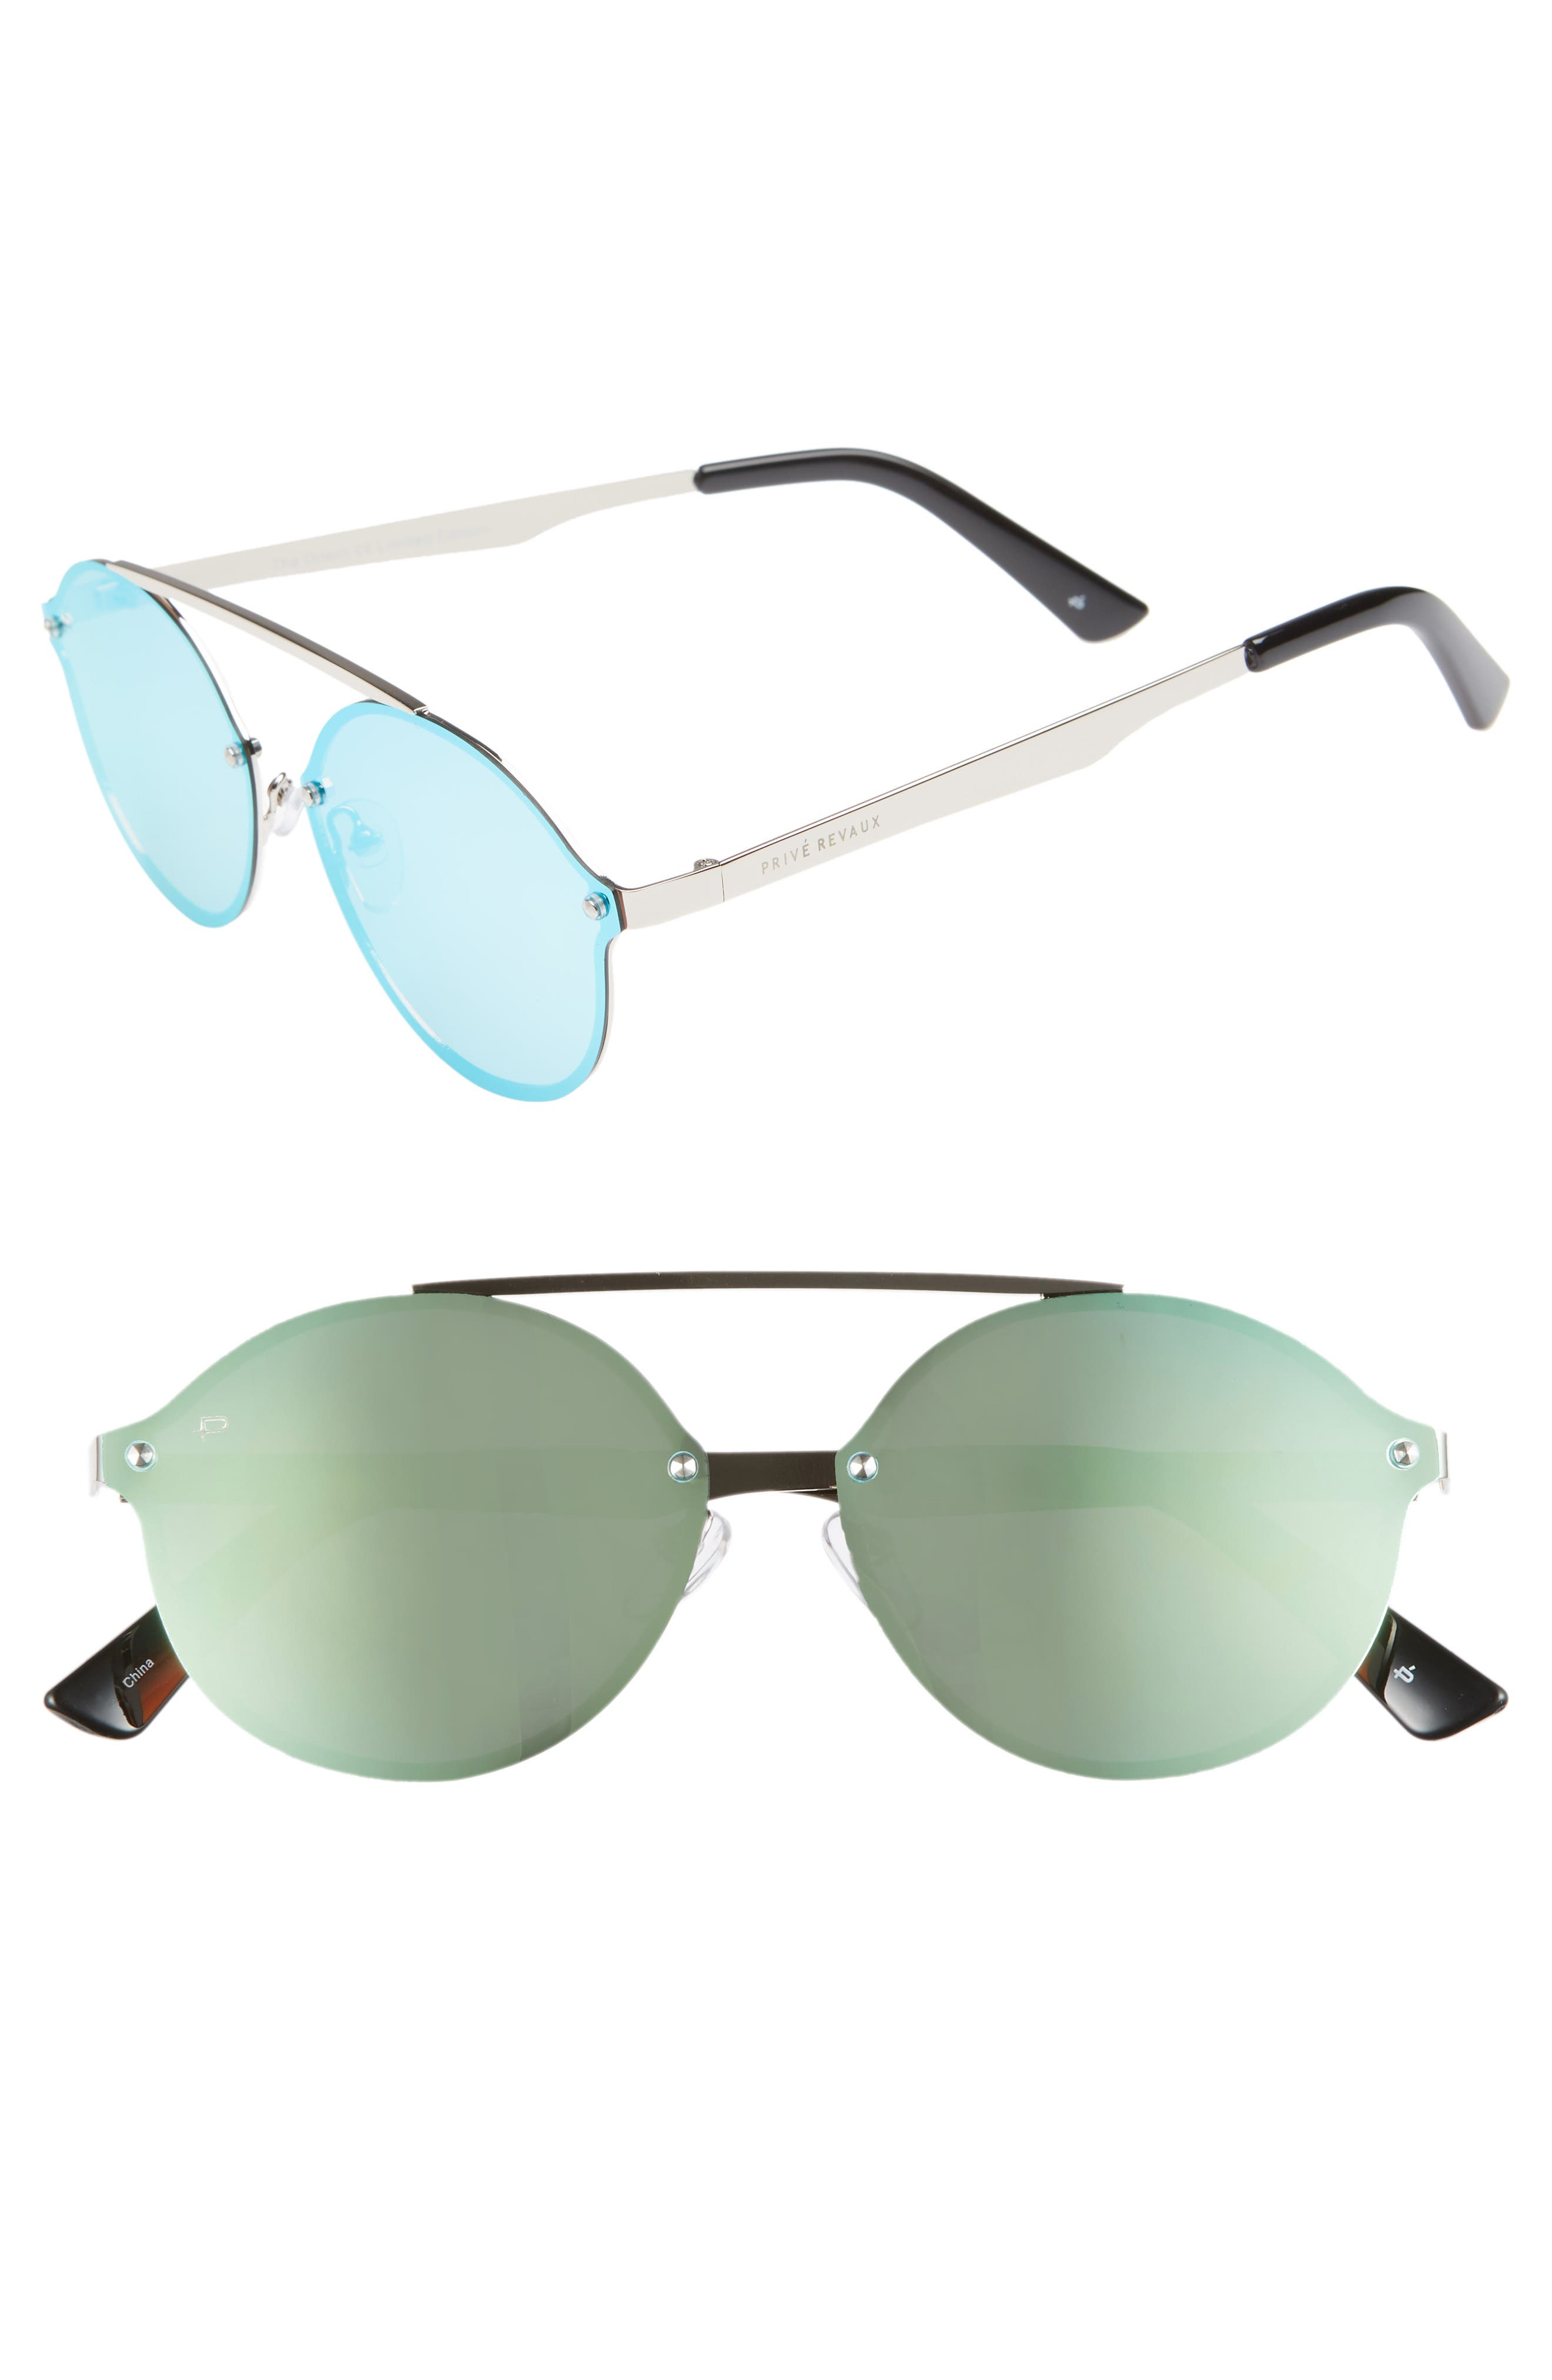 Privé Revaux The Orient 58mm Sunglasses,                             Main thumbnail 1, color,                             DARK BLUE MIRROR